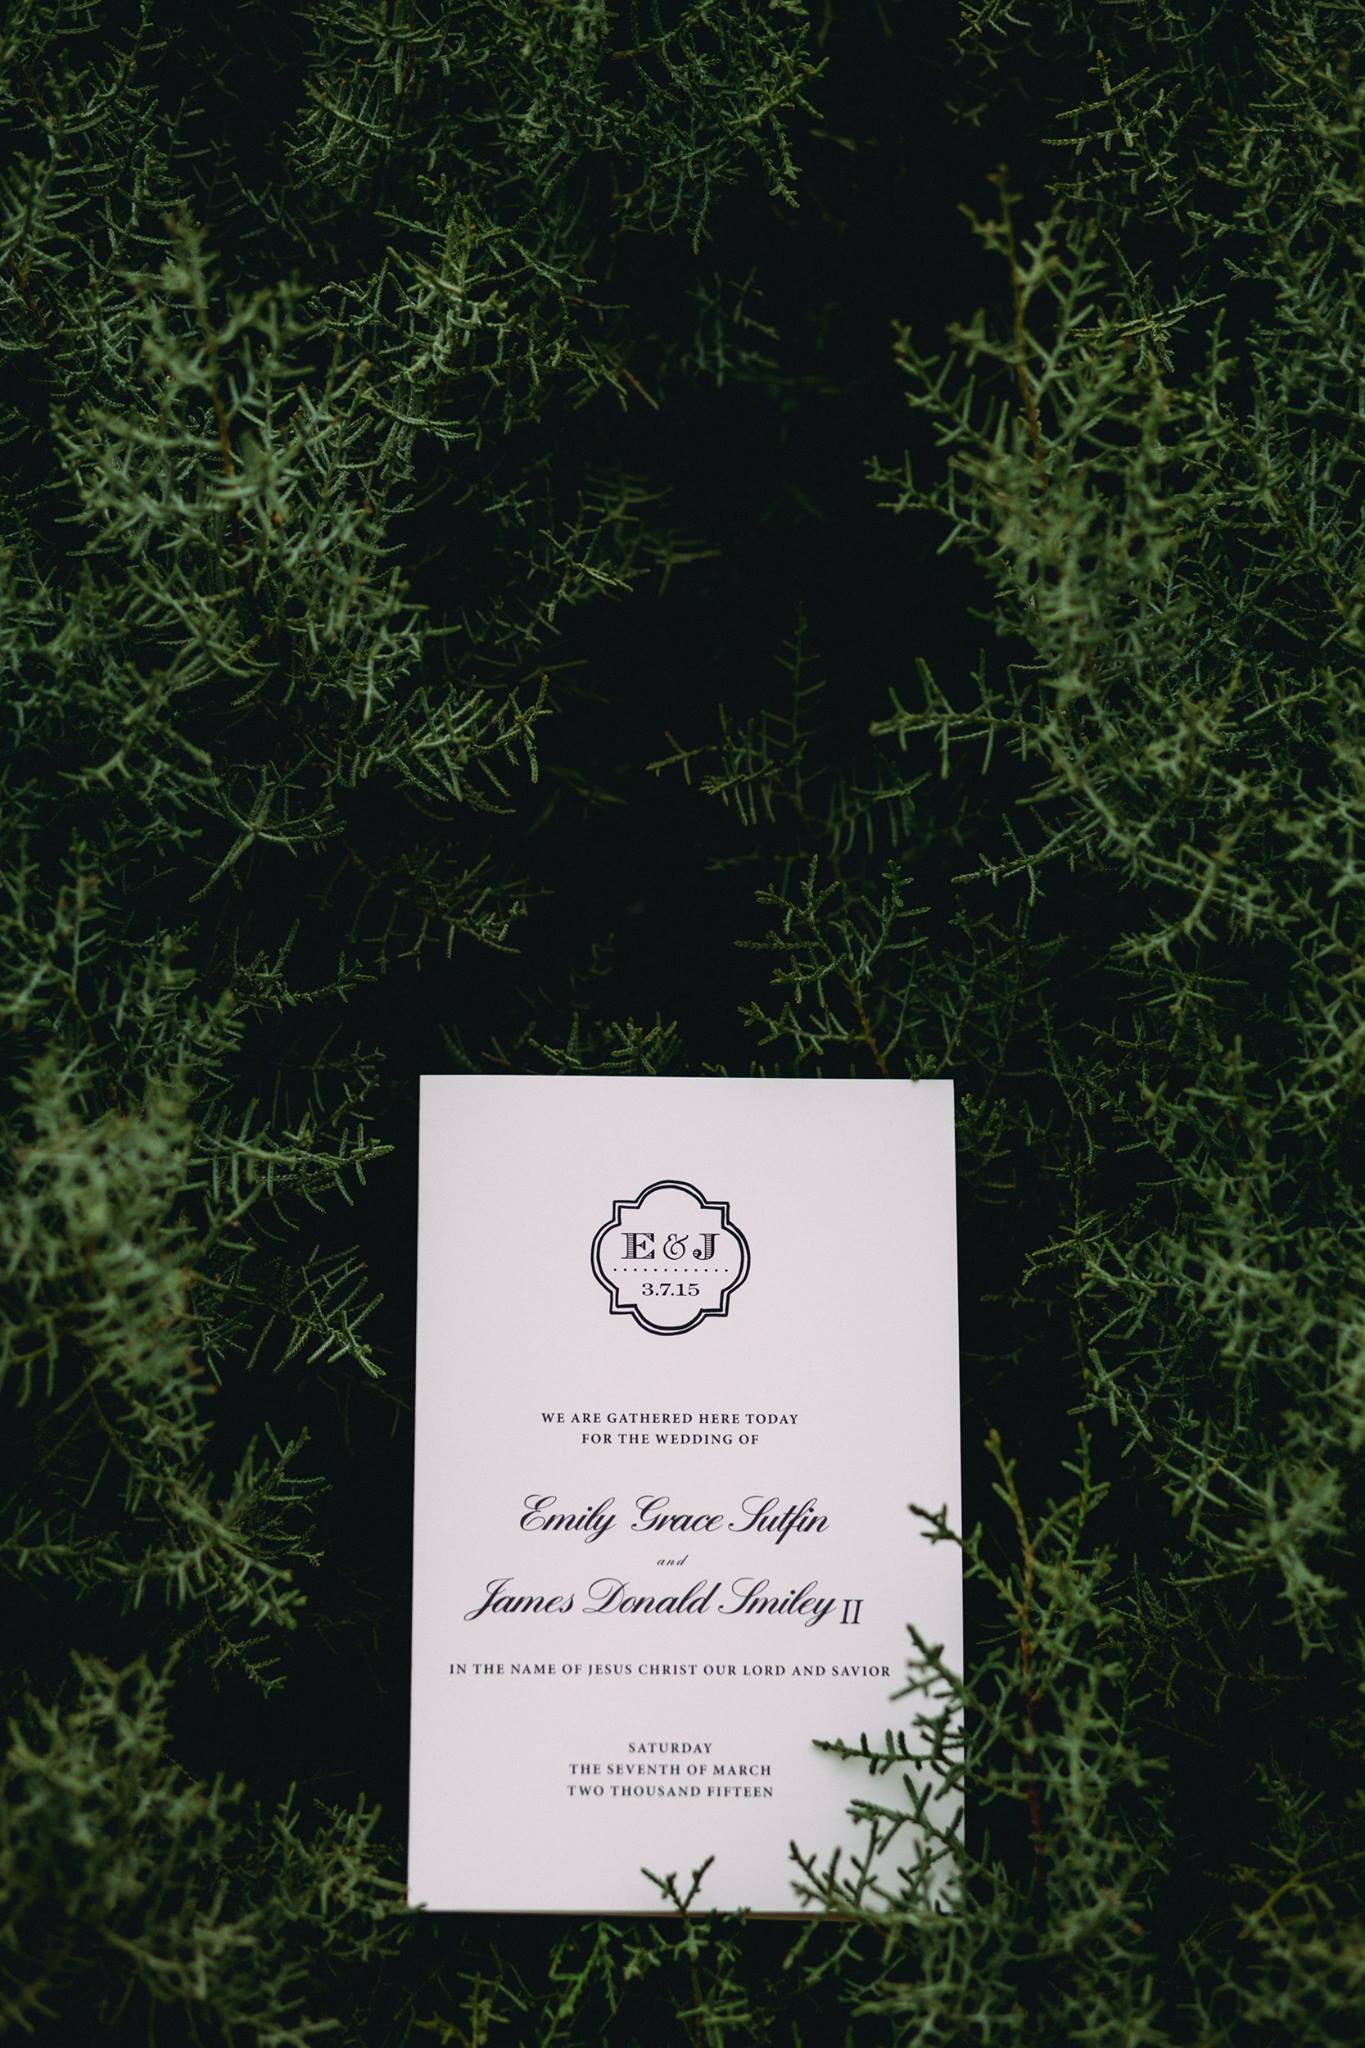 Photo by  Grant Daniels Photography    Style: Bifold   Paper: Cream Cardstock  Ink: Black